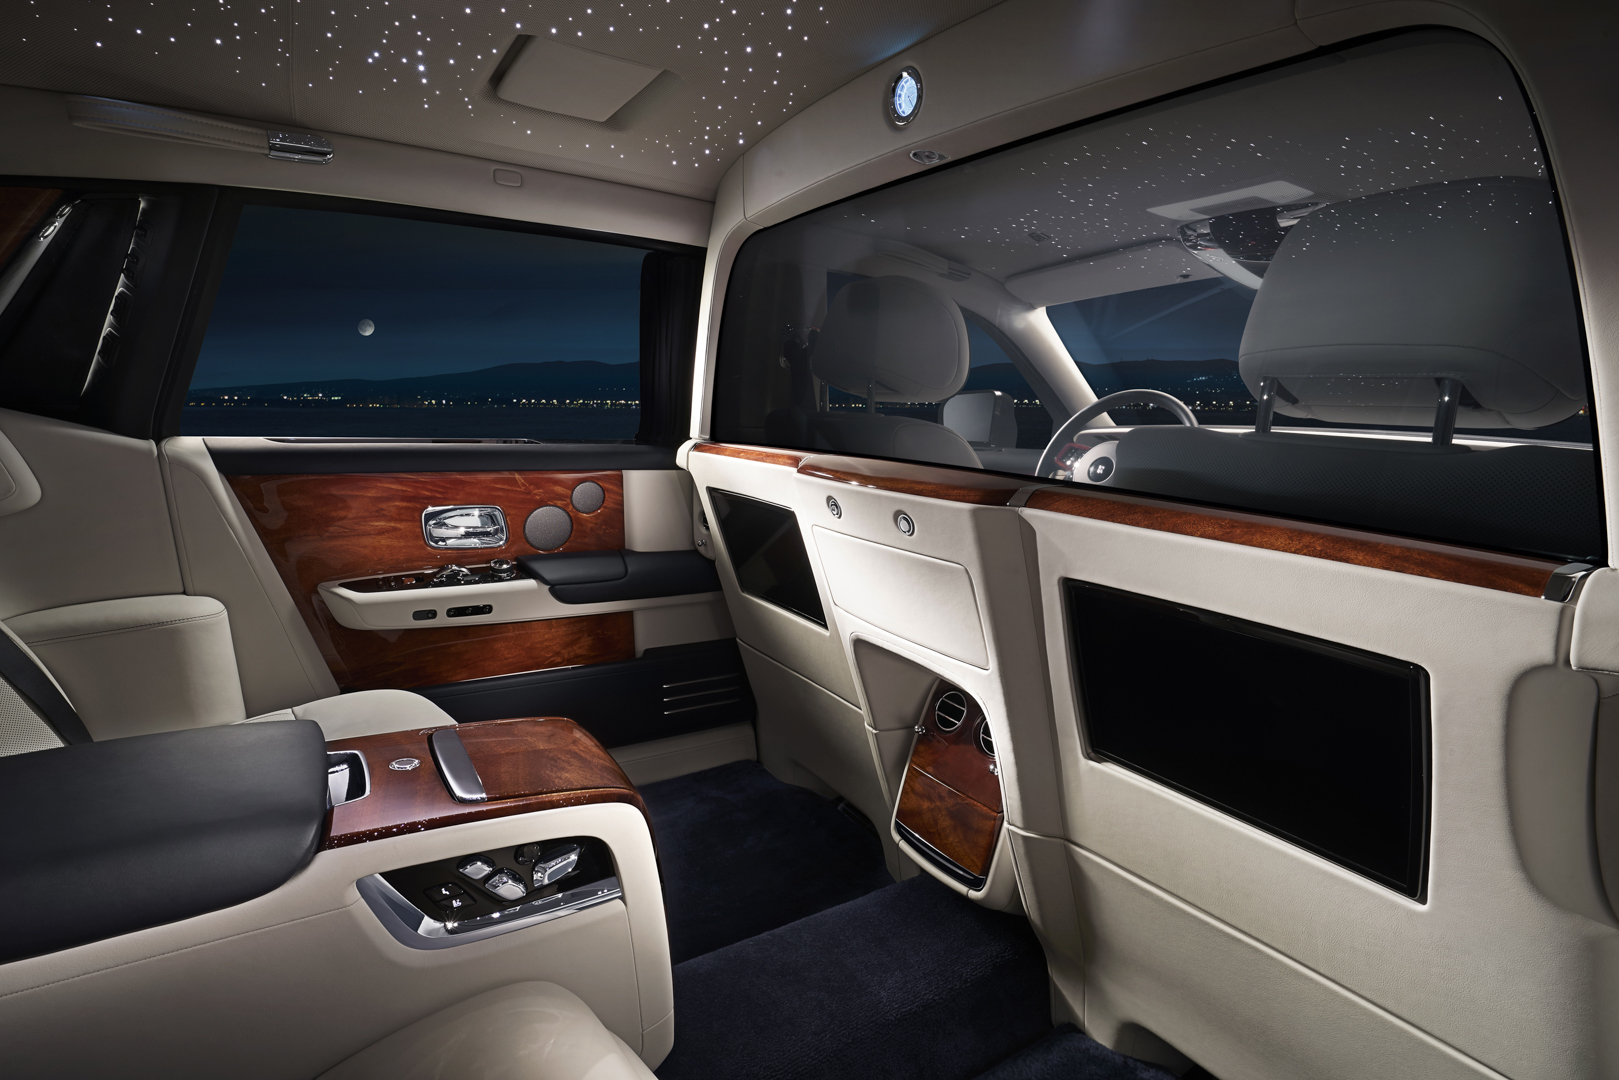 Rolls Royce Phantom Ewb Gets A Privacy Suite For Total